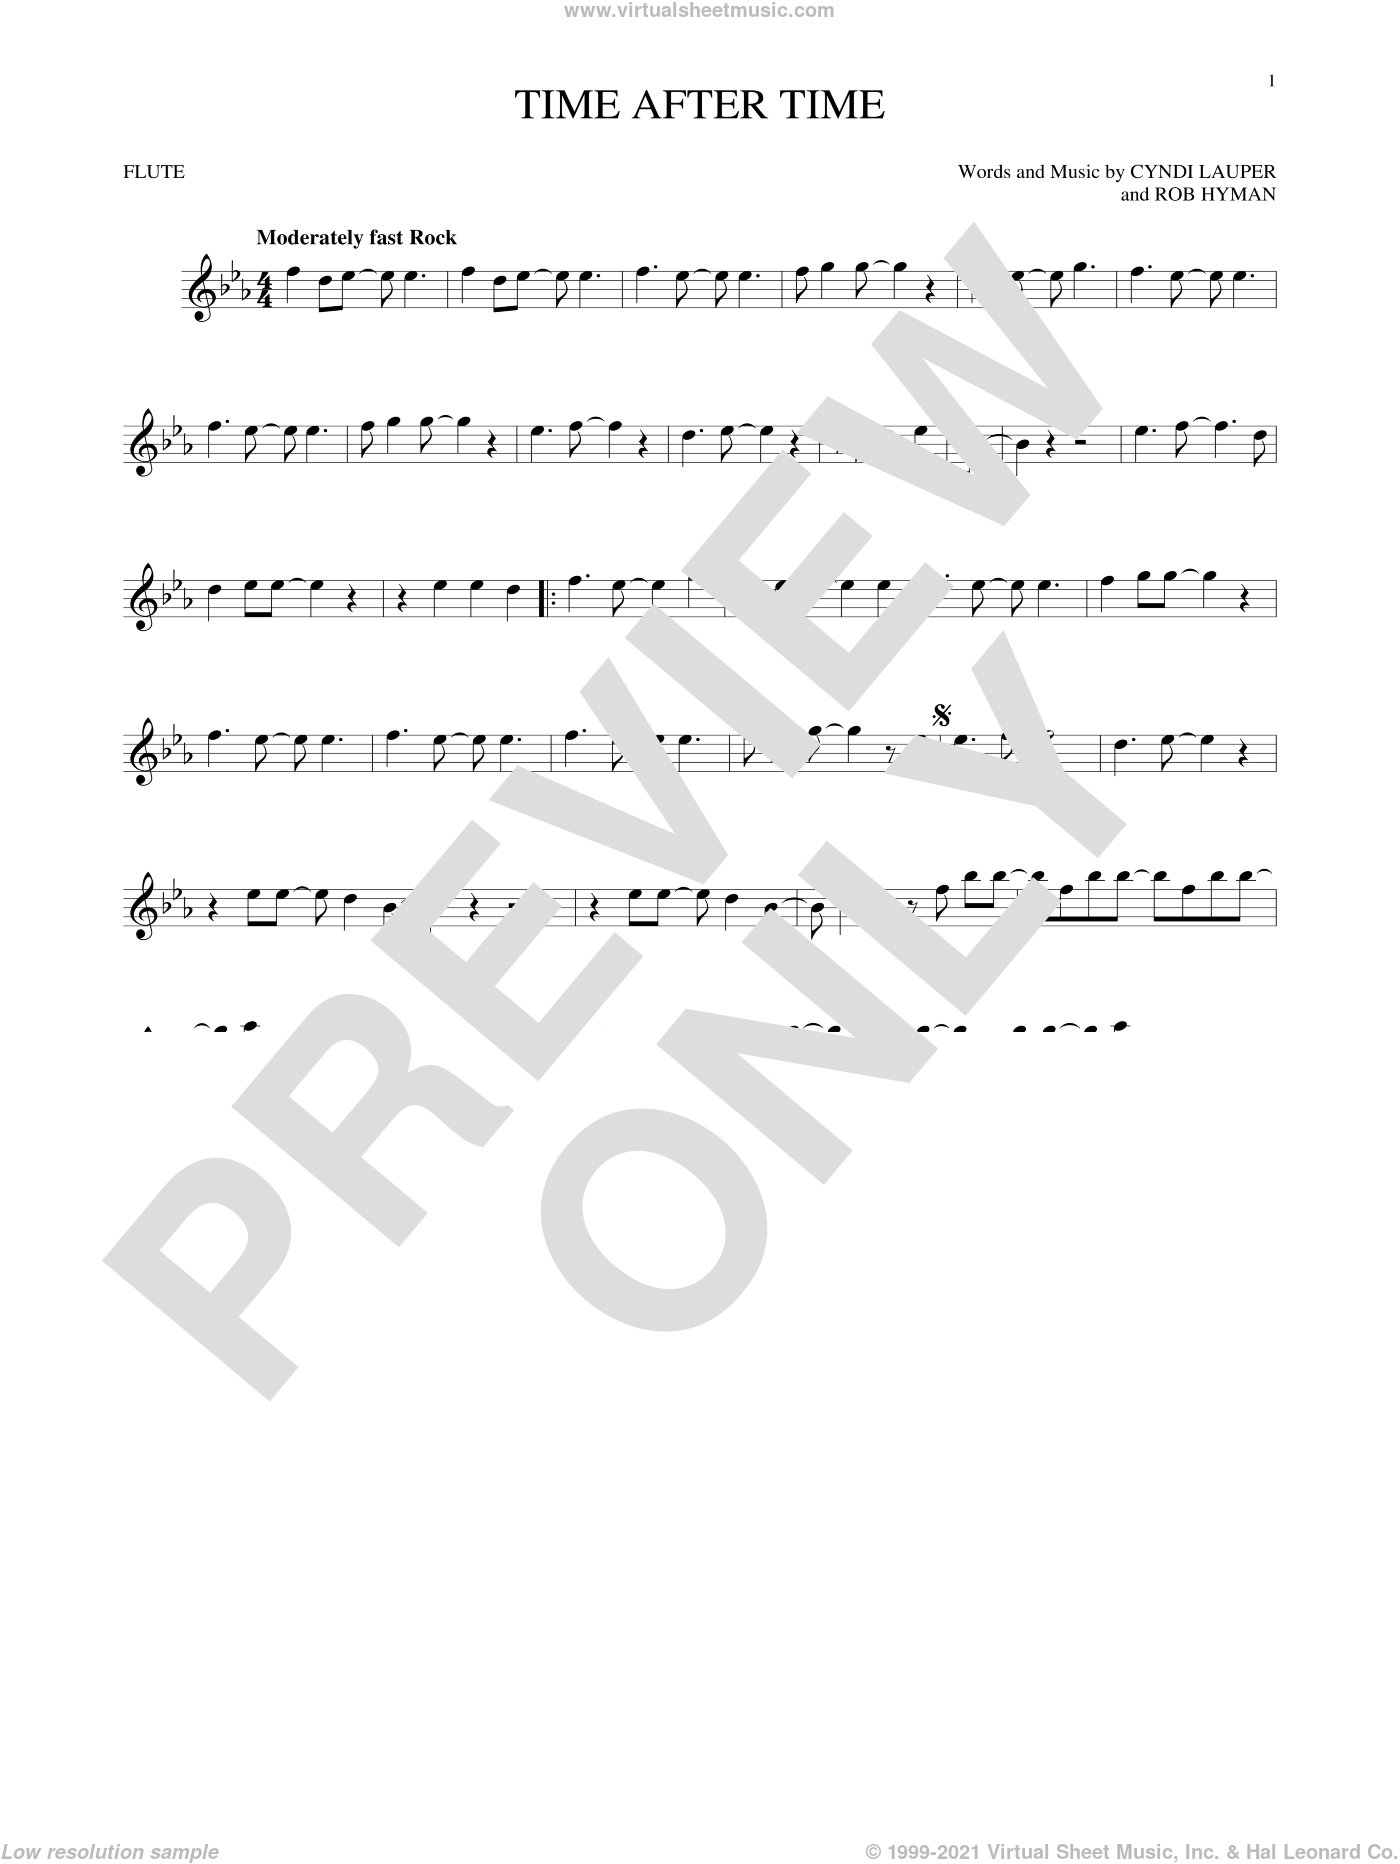 Time After Time sheet music for flute solo by Cyndi Lauper, Inoj and Rob Hyman, intermediate flute. Score Image Preview.